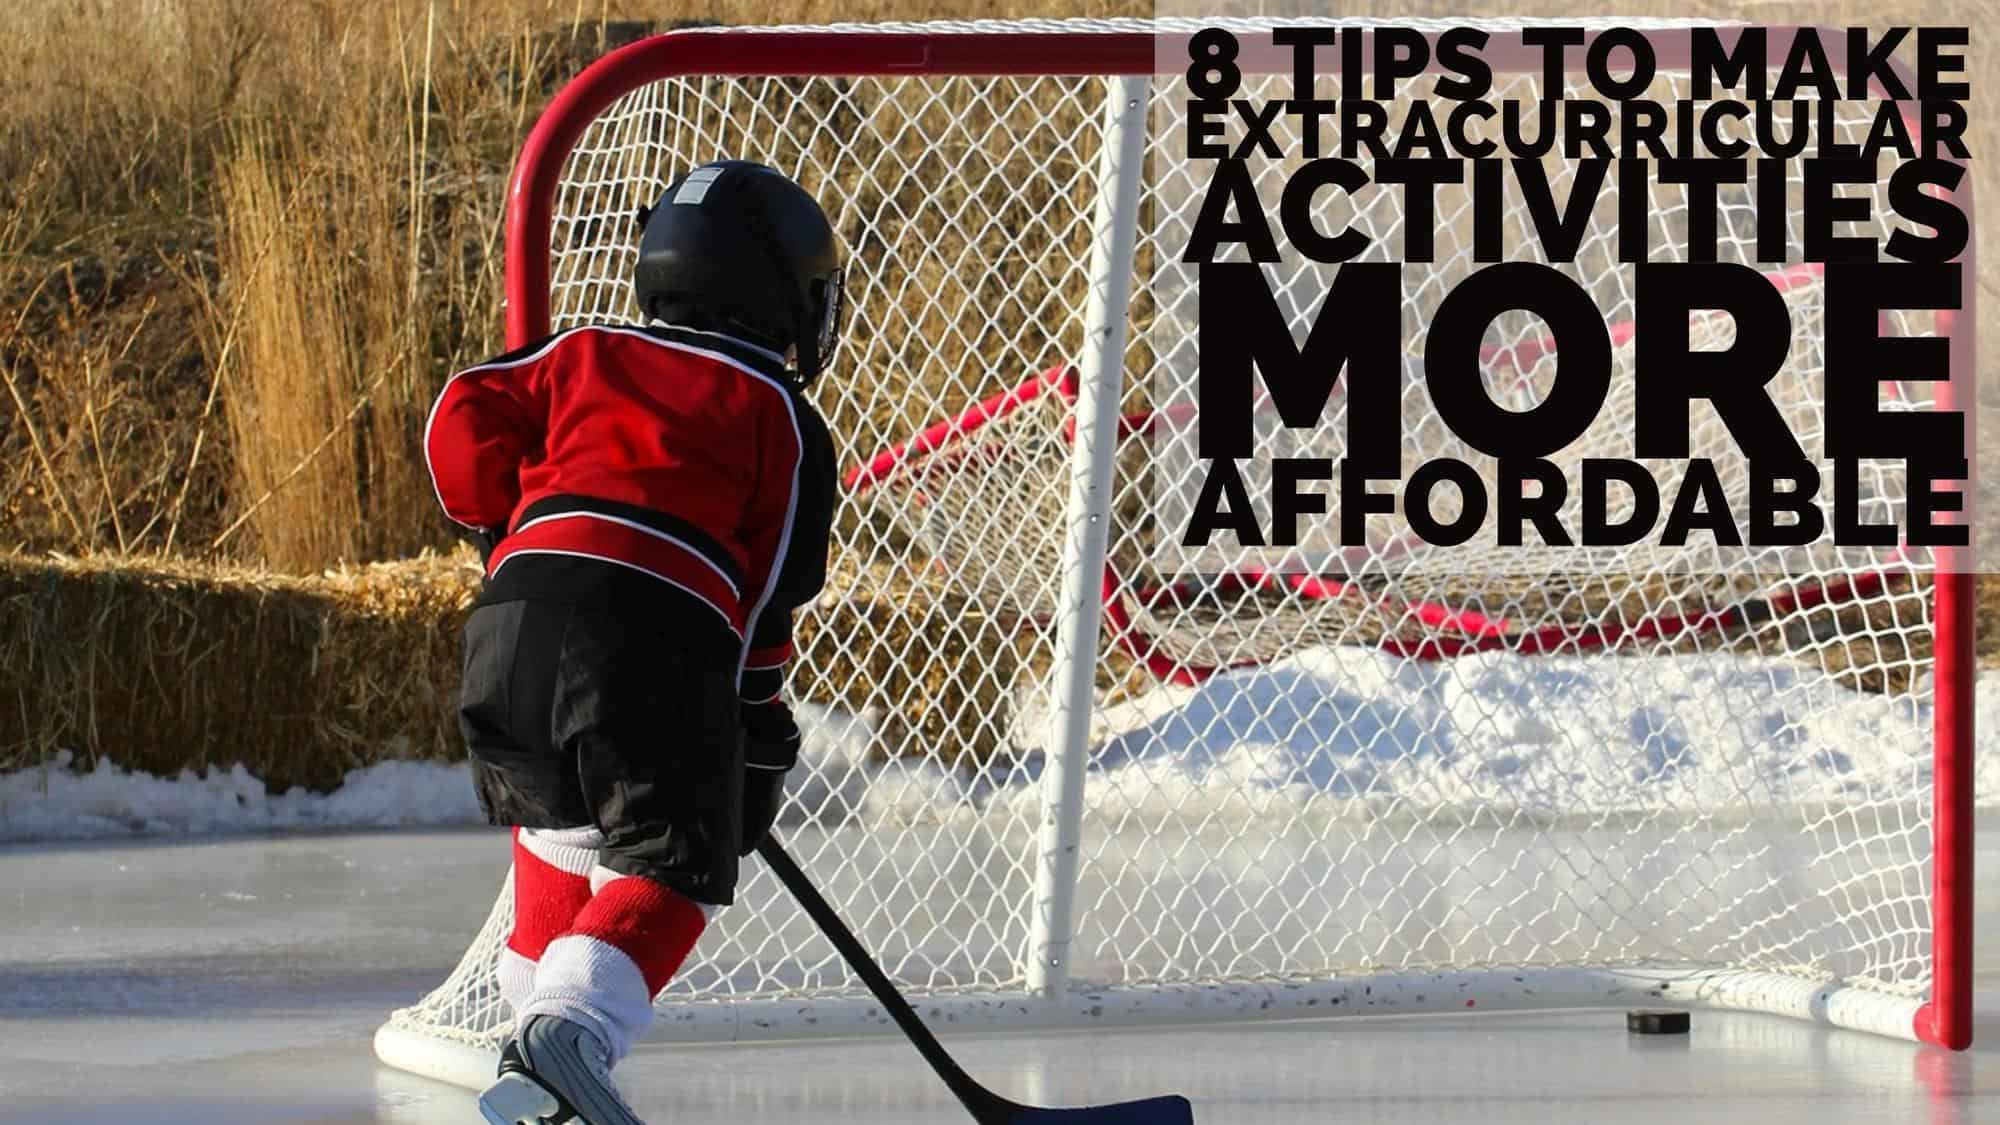 8 Tips To Make Extracurricular Activities More Affordable